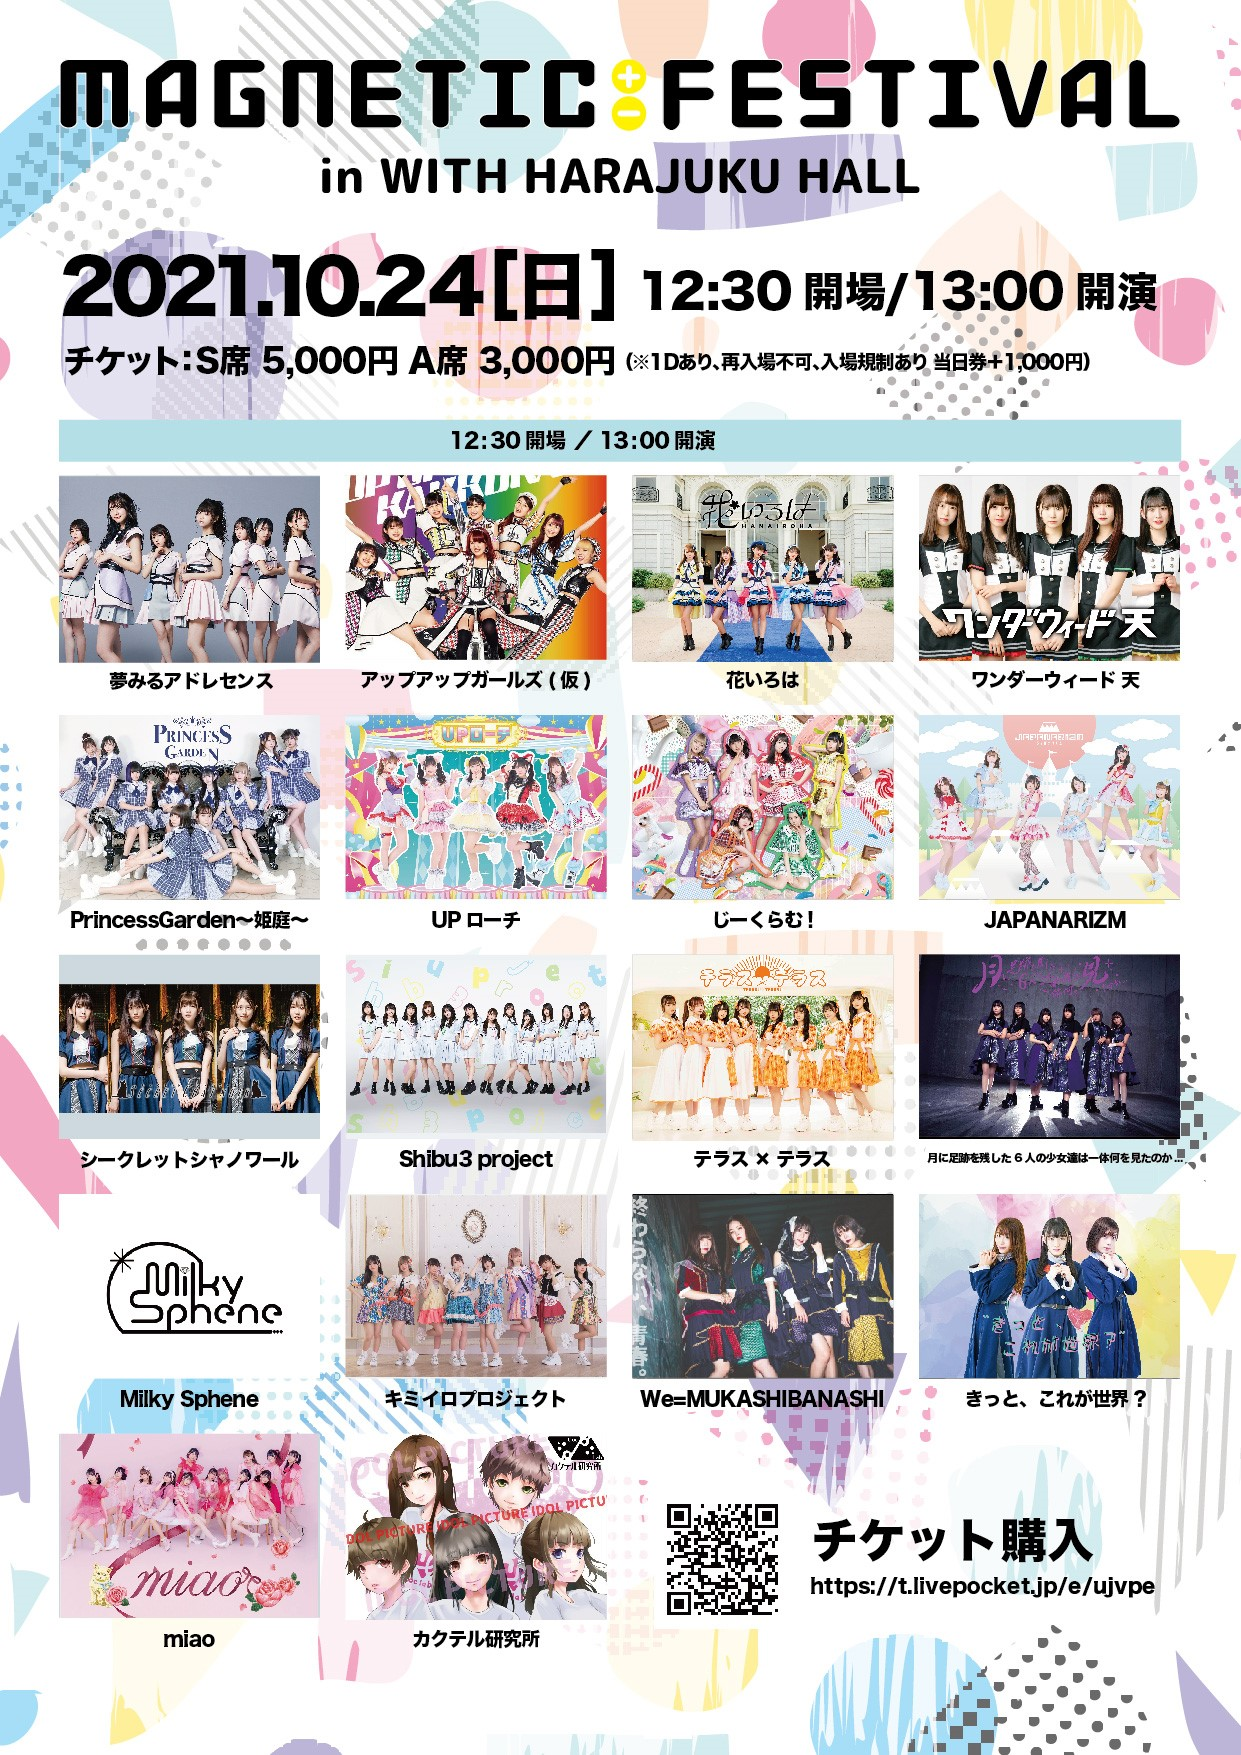 MAGNETIC FESTIVAL in WITH HARAJUKU HALL